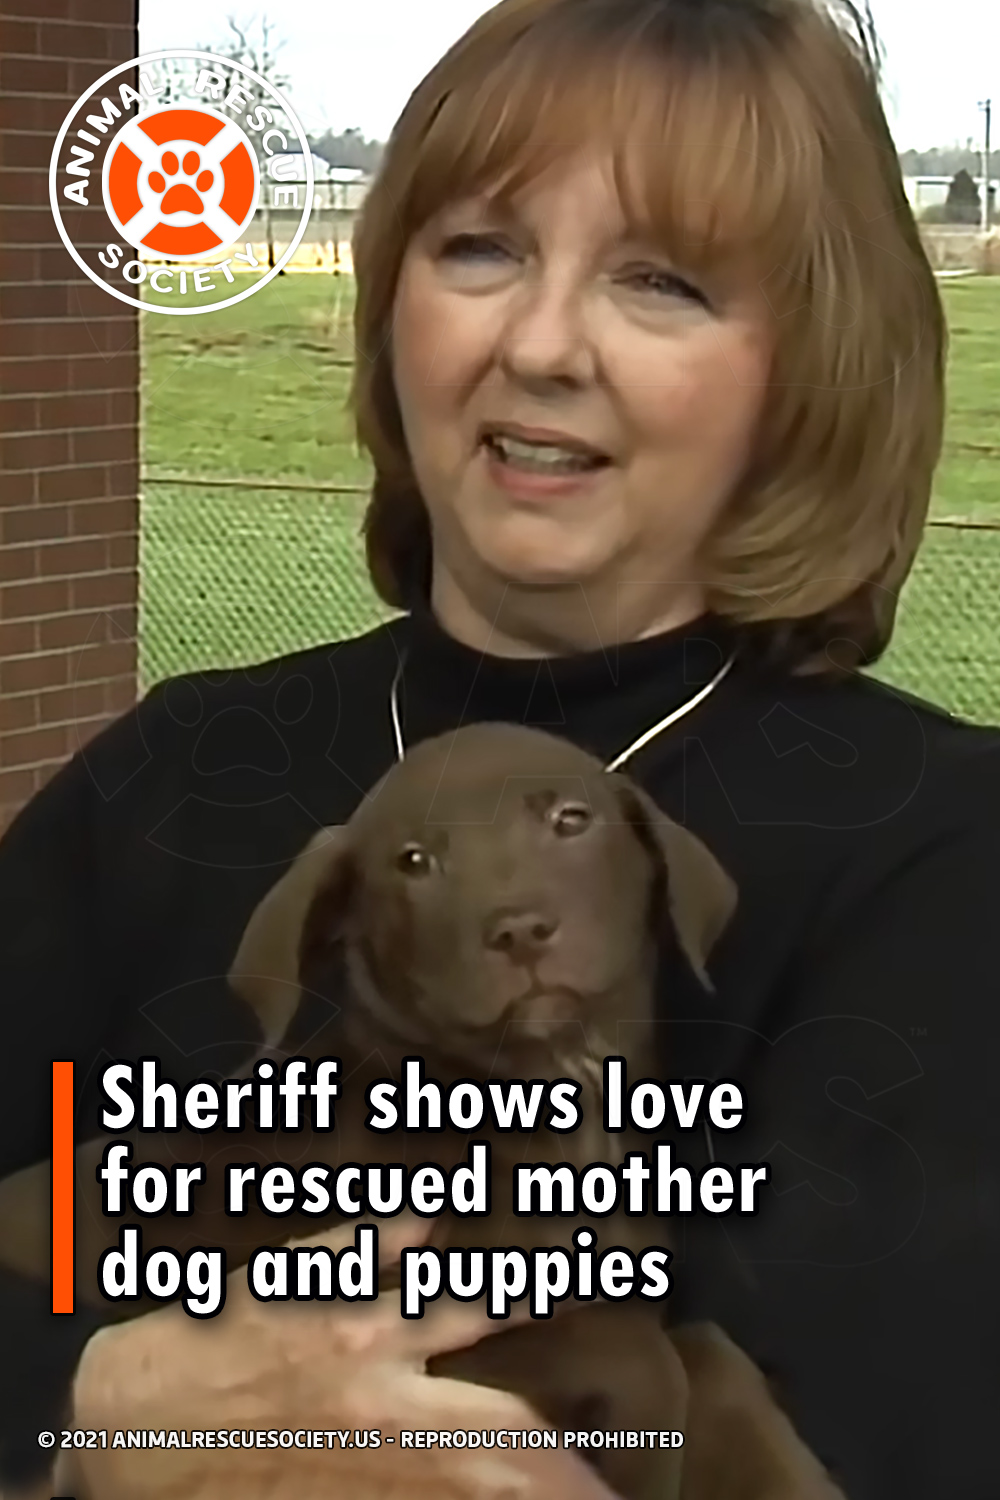 Sheriff shows love for rescued mother dog and puppies